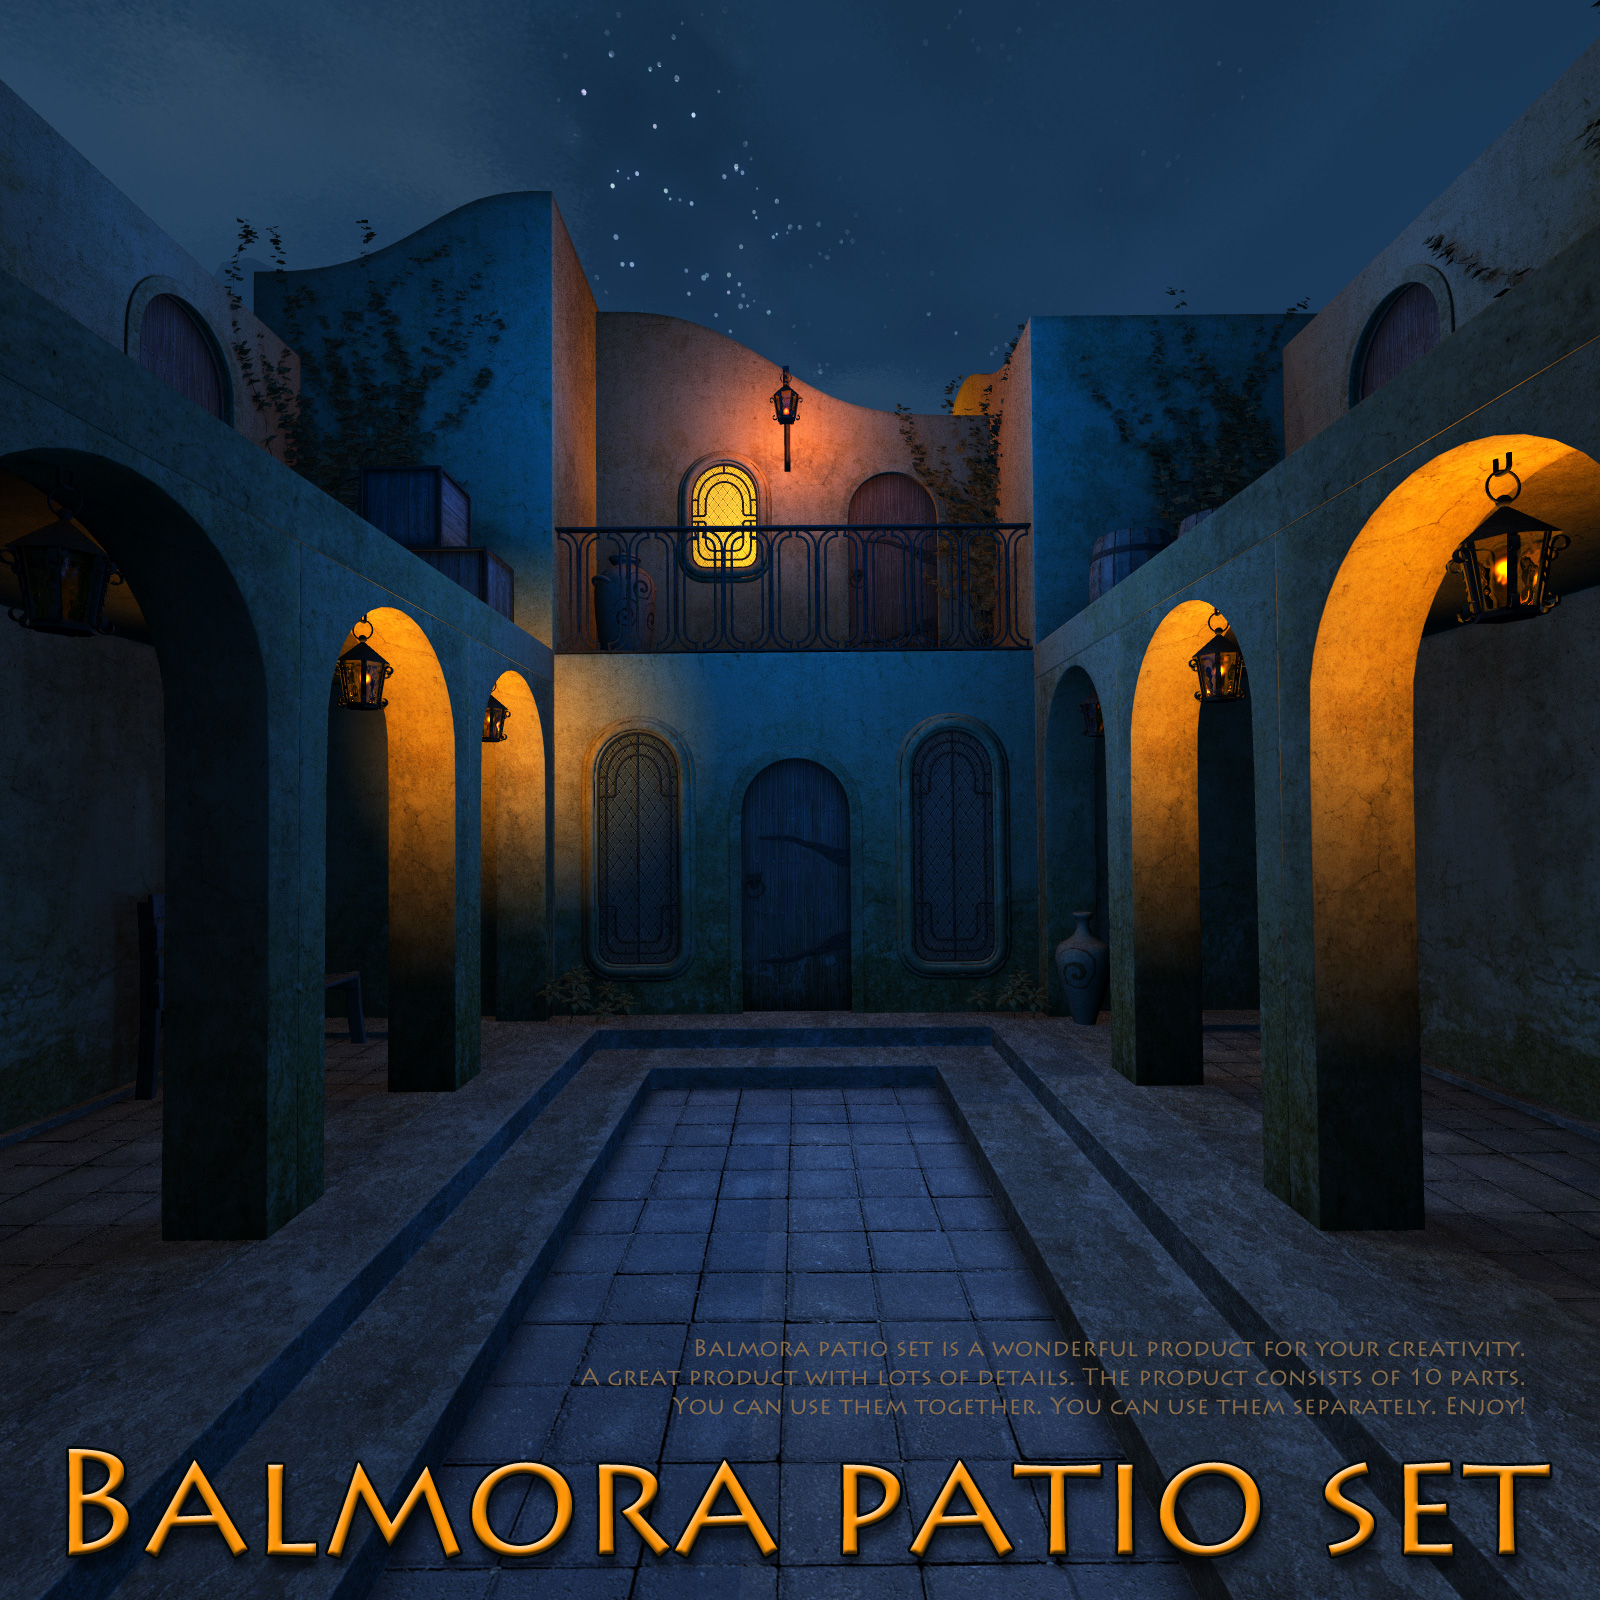 Balmora patio set